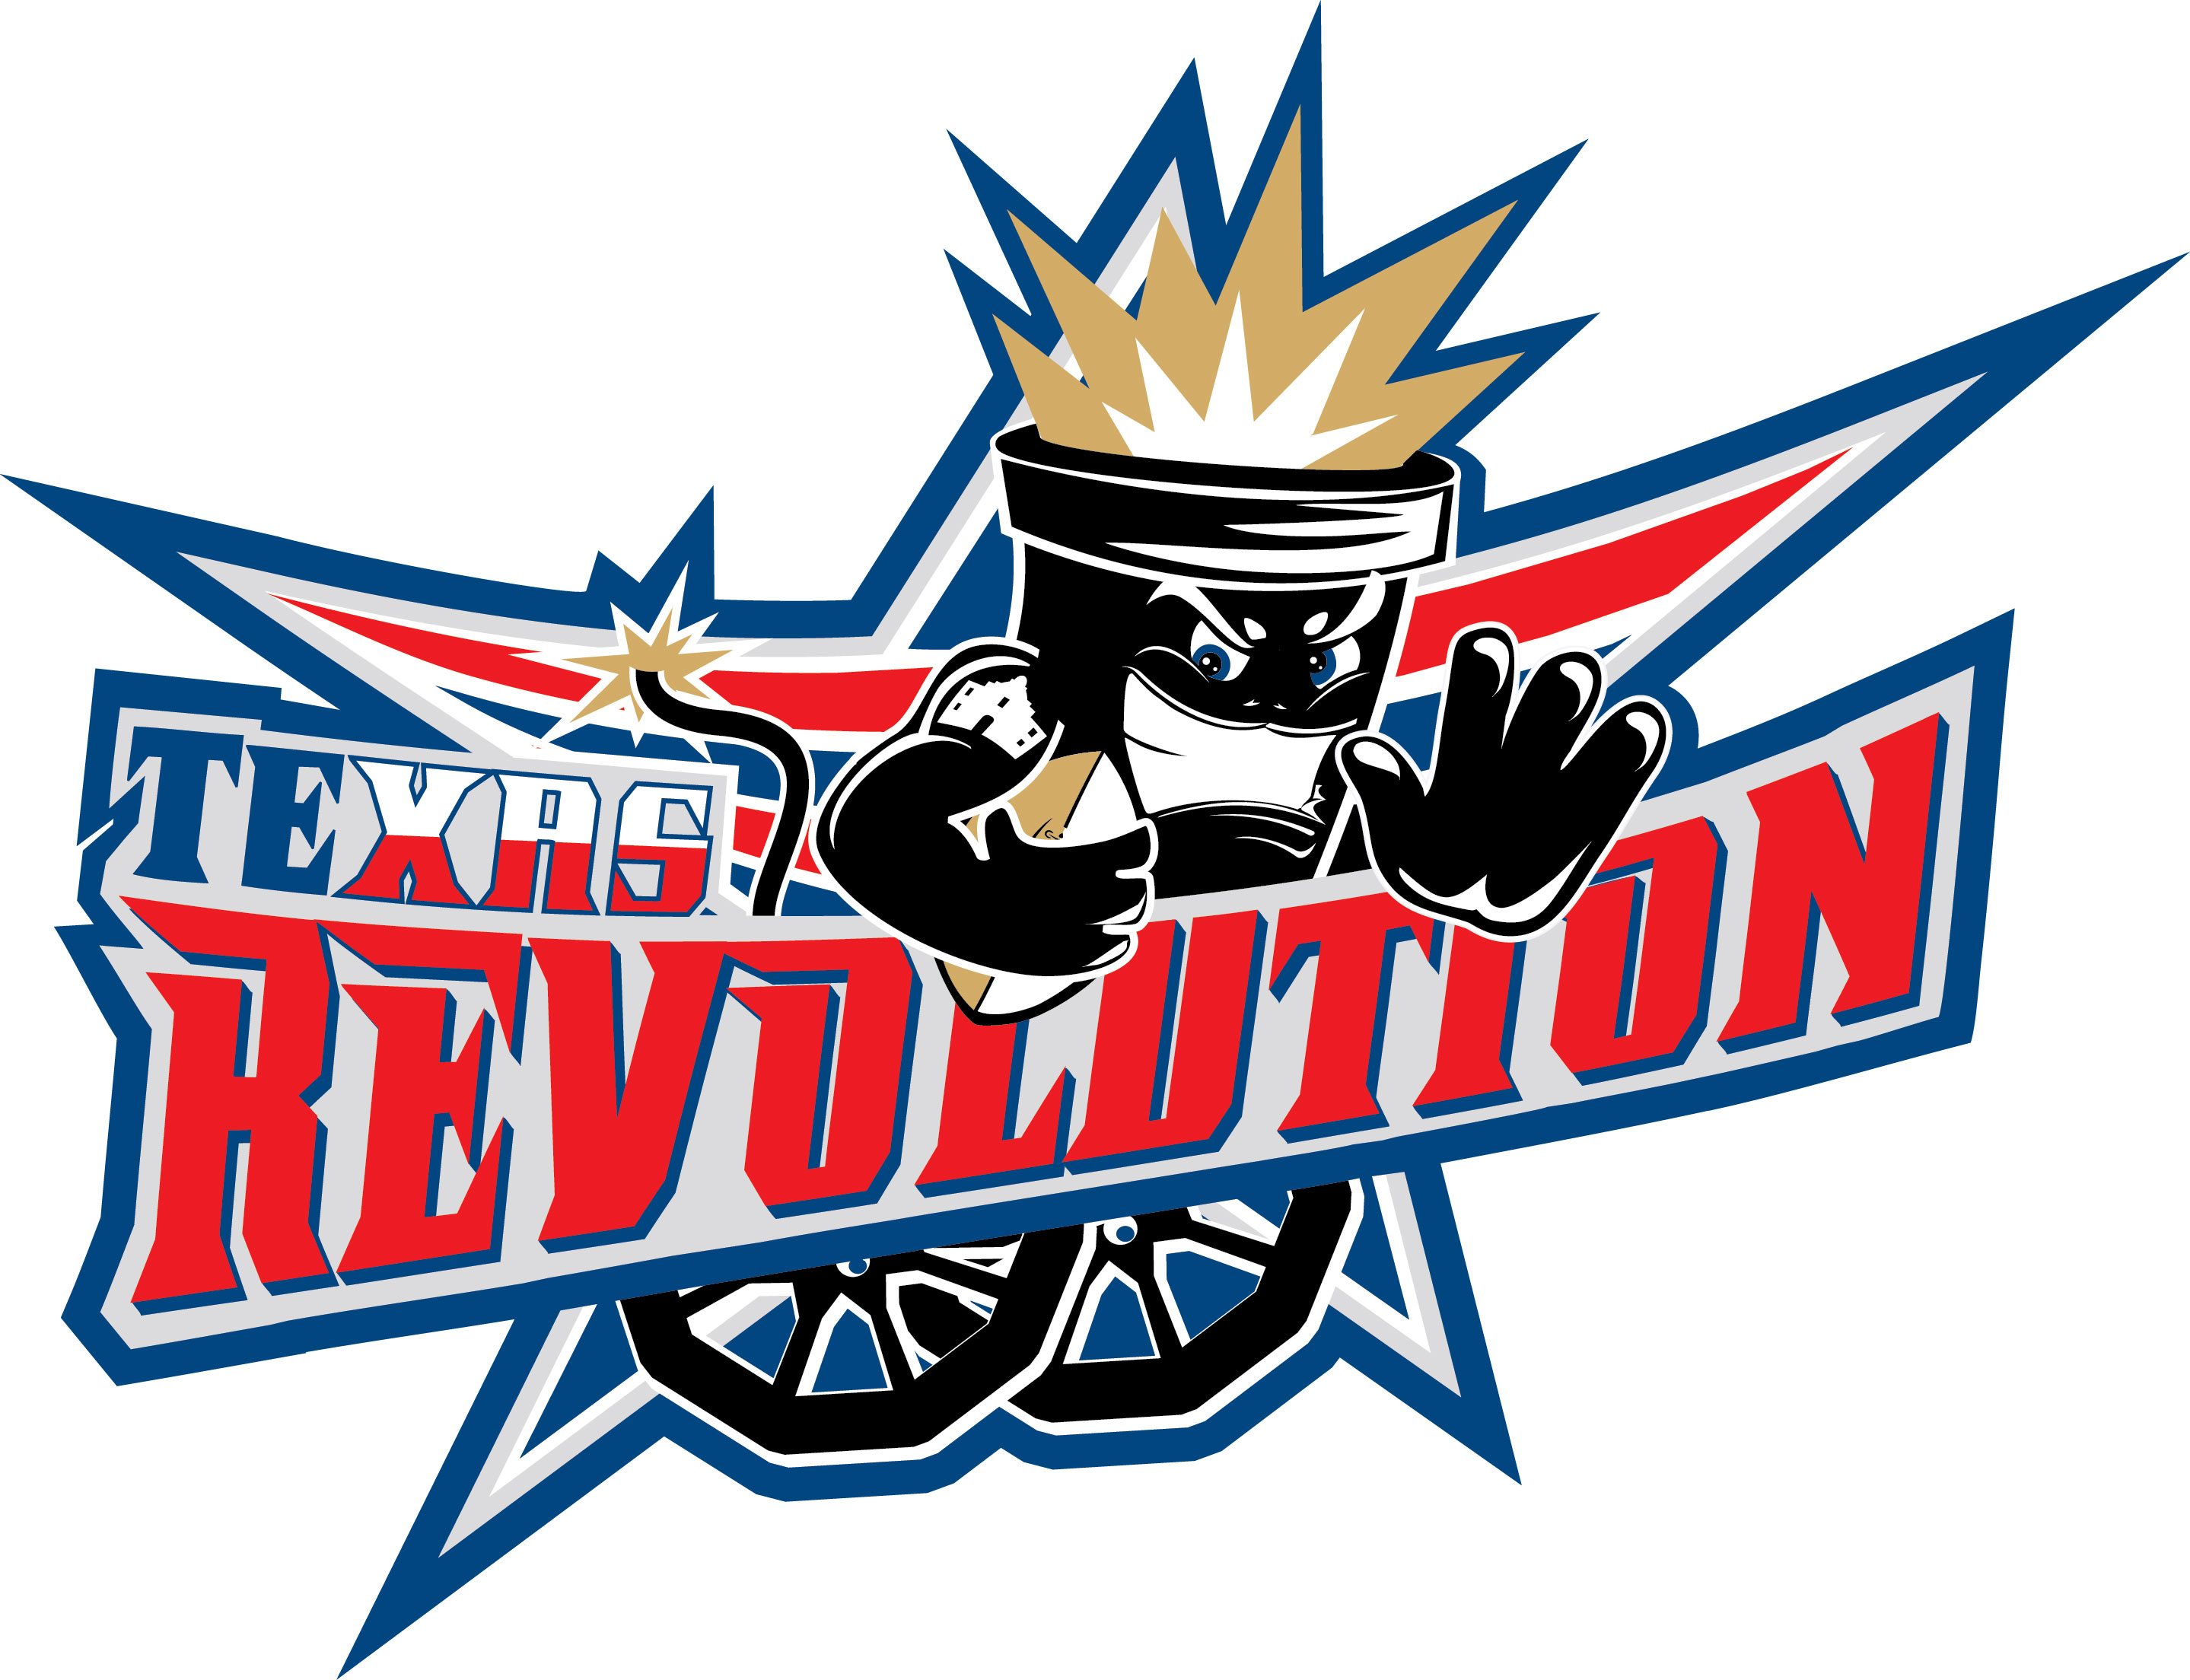 Texas Revolution Football